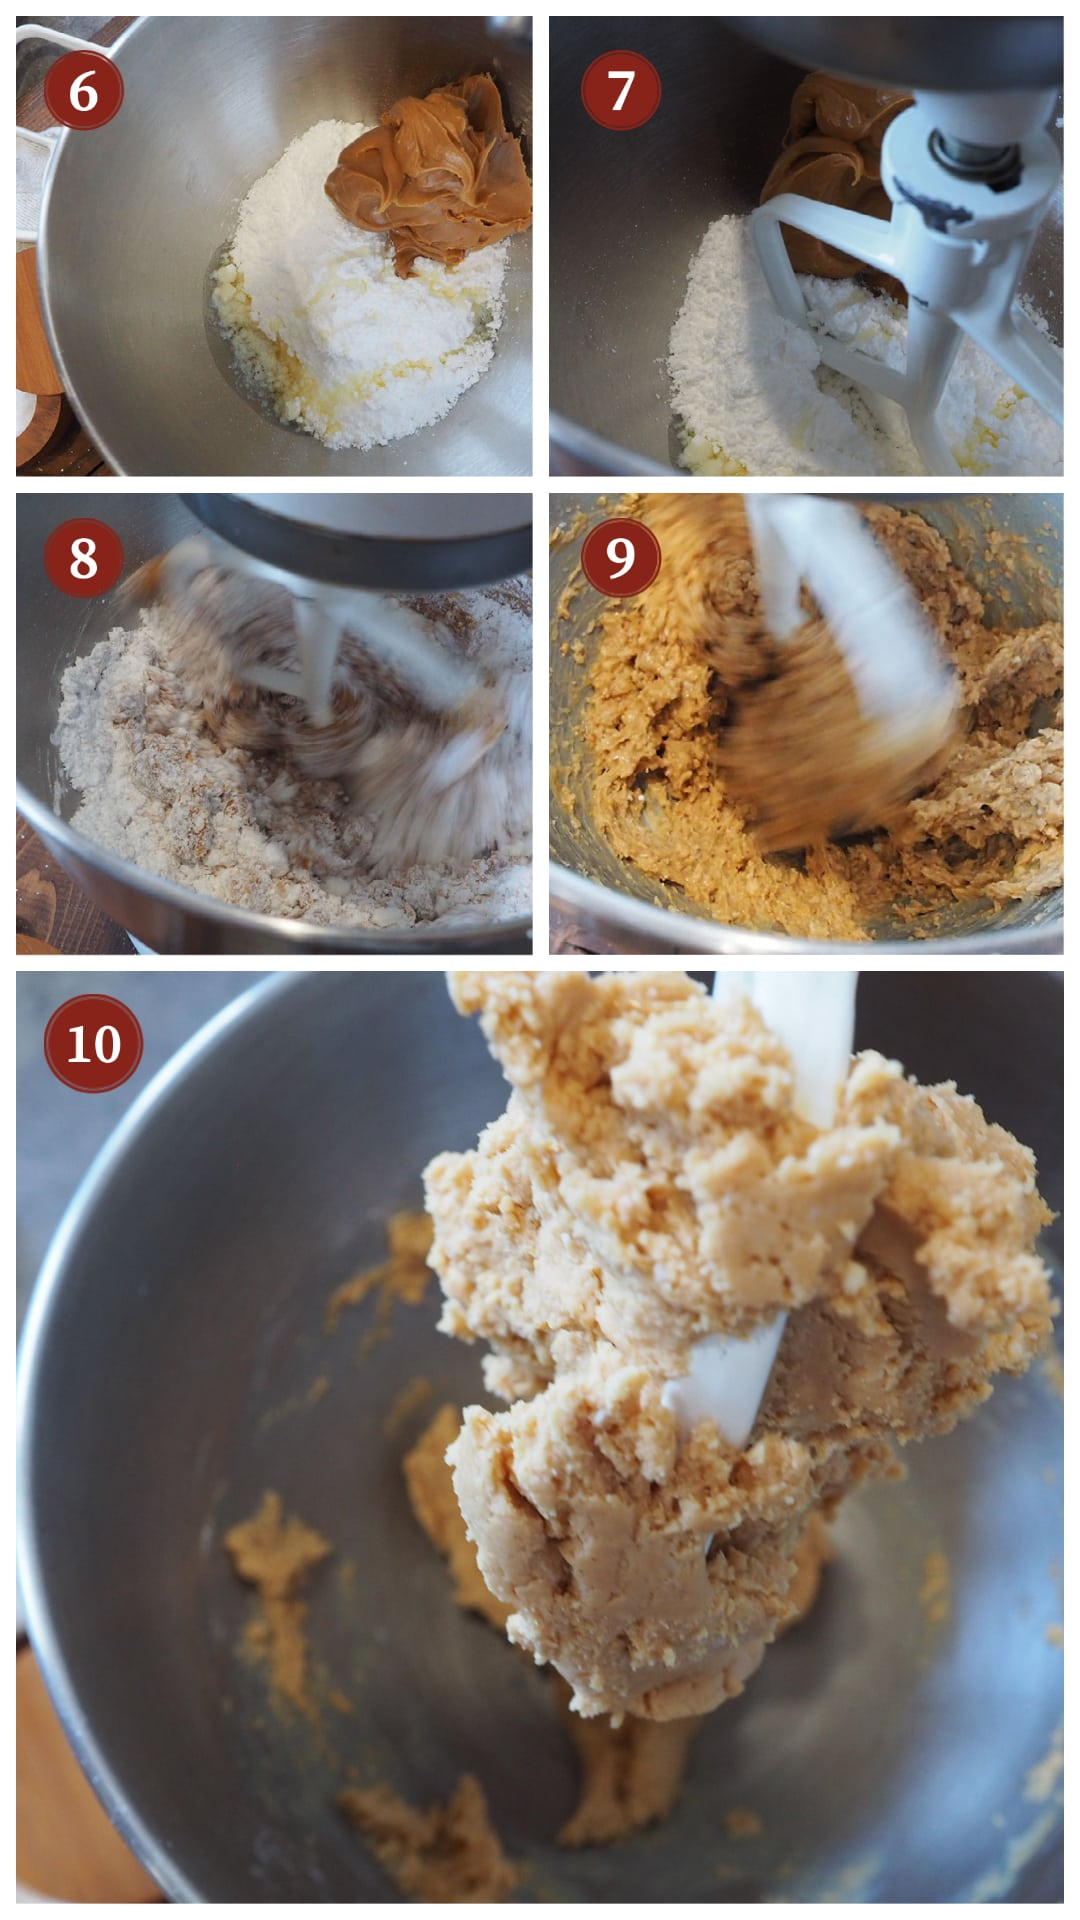 A collage of images showing the texture of the dough in a homemade peanut butter cup, steps 6 - 10.